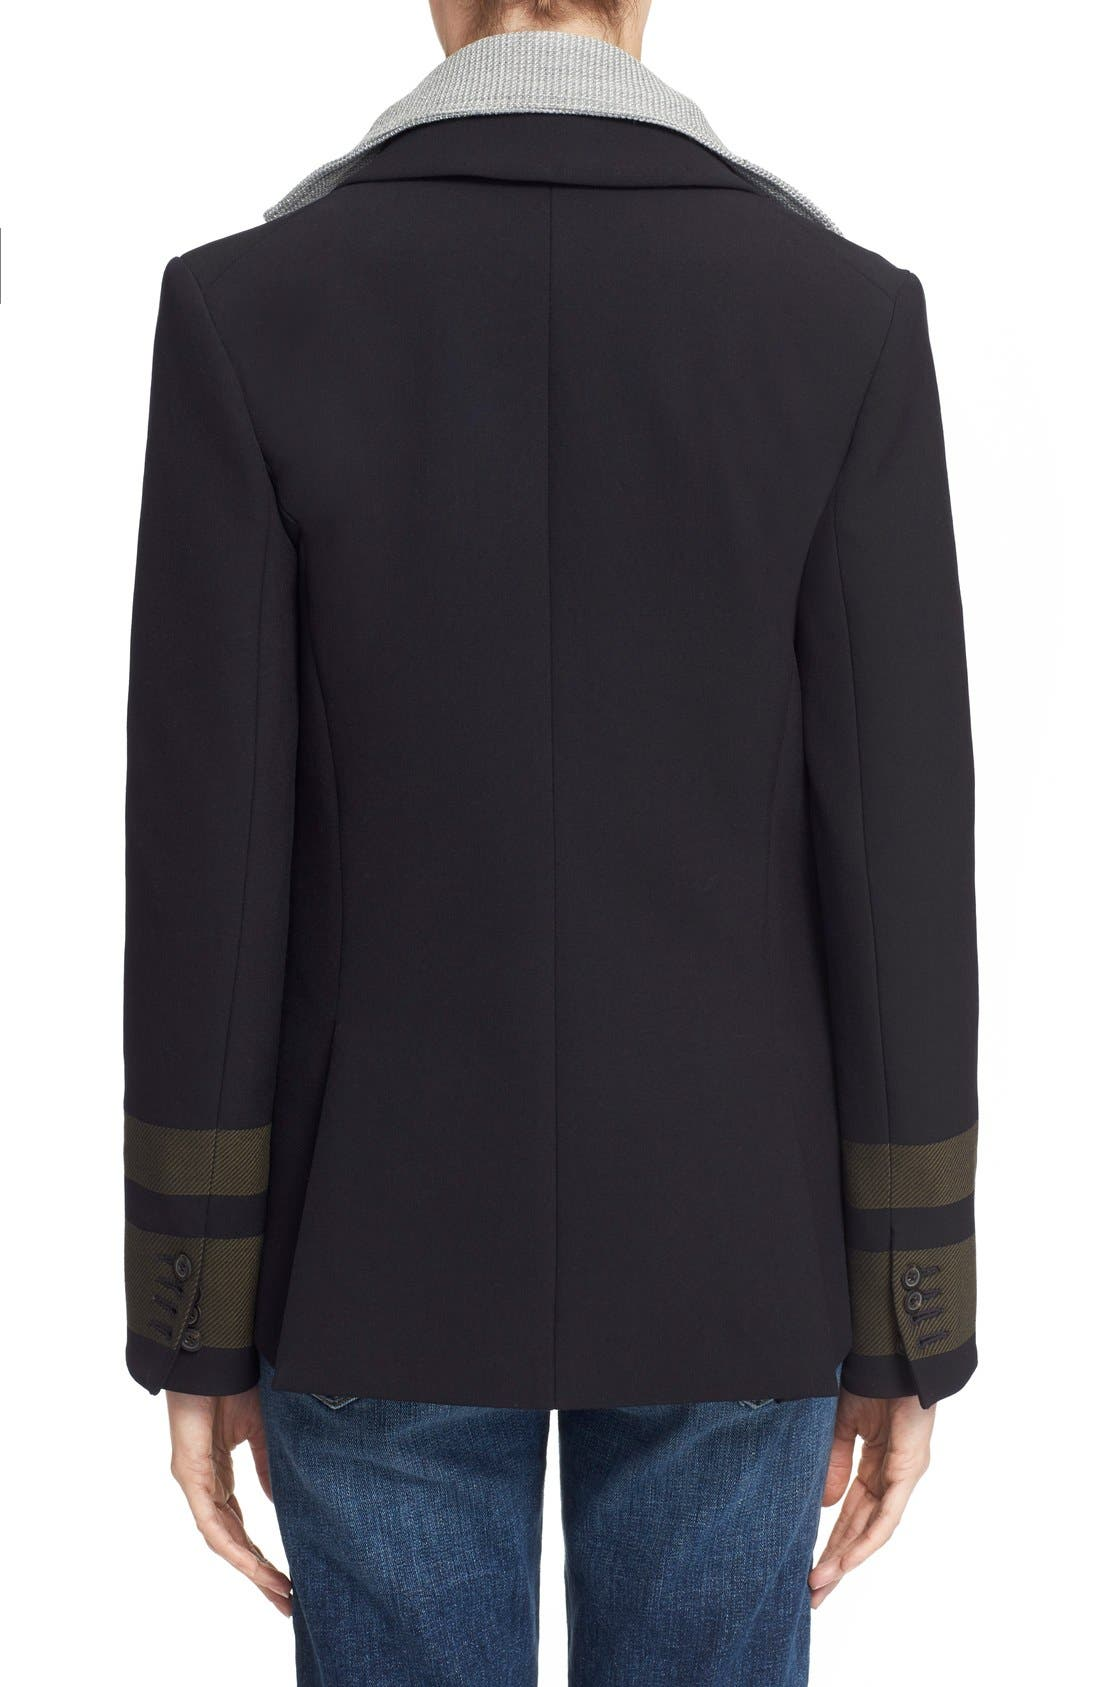 Alternate Image 3  - Veronica Beard Cutaway Jacket with Removable Knit Dickey